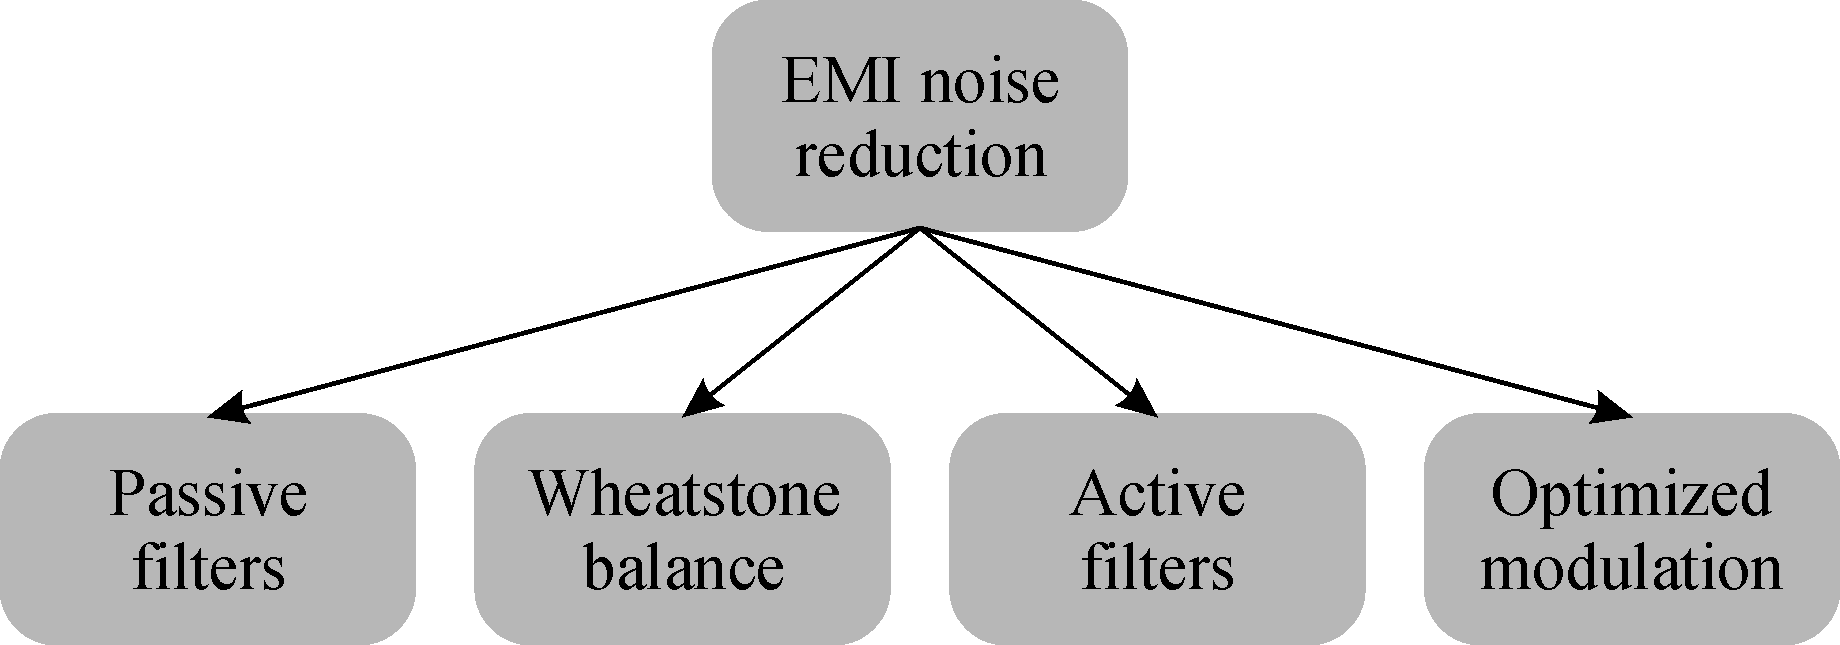 Electromagnetic Interference Modeling And Suppression Techniques In Active Passive Filters New Window